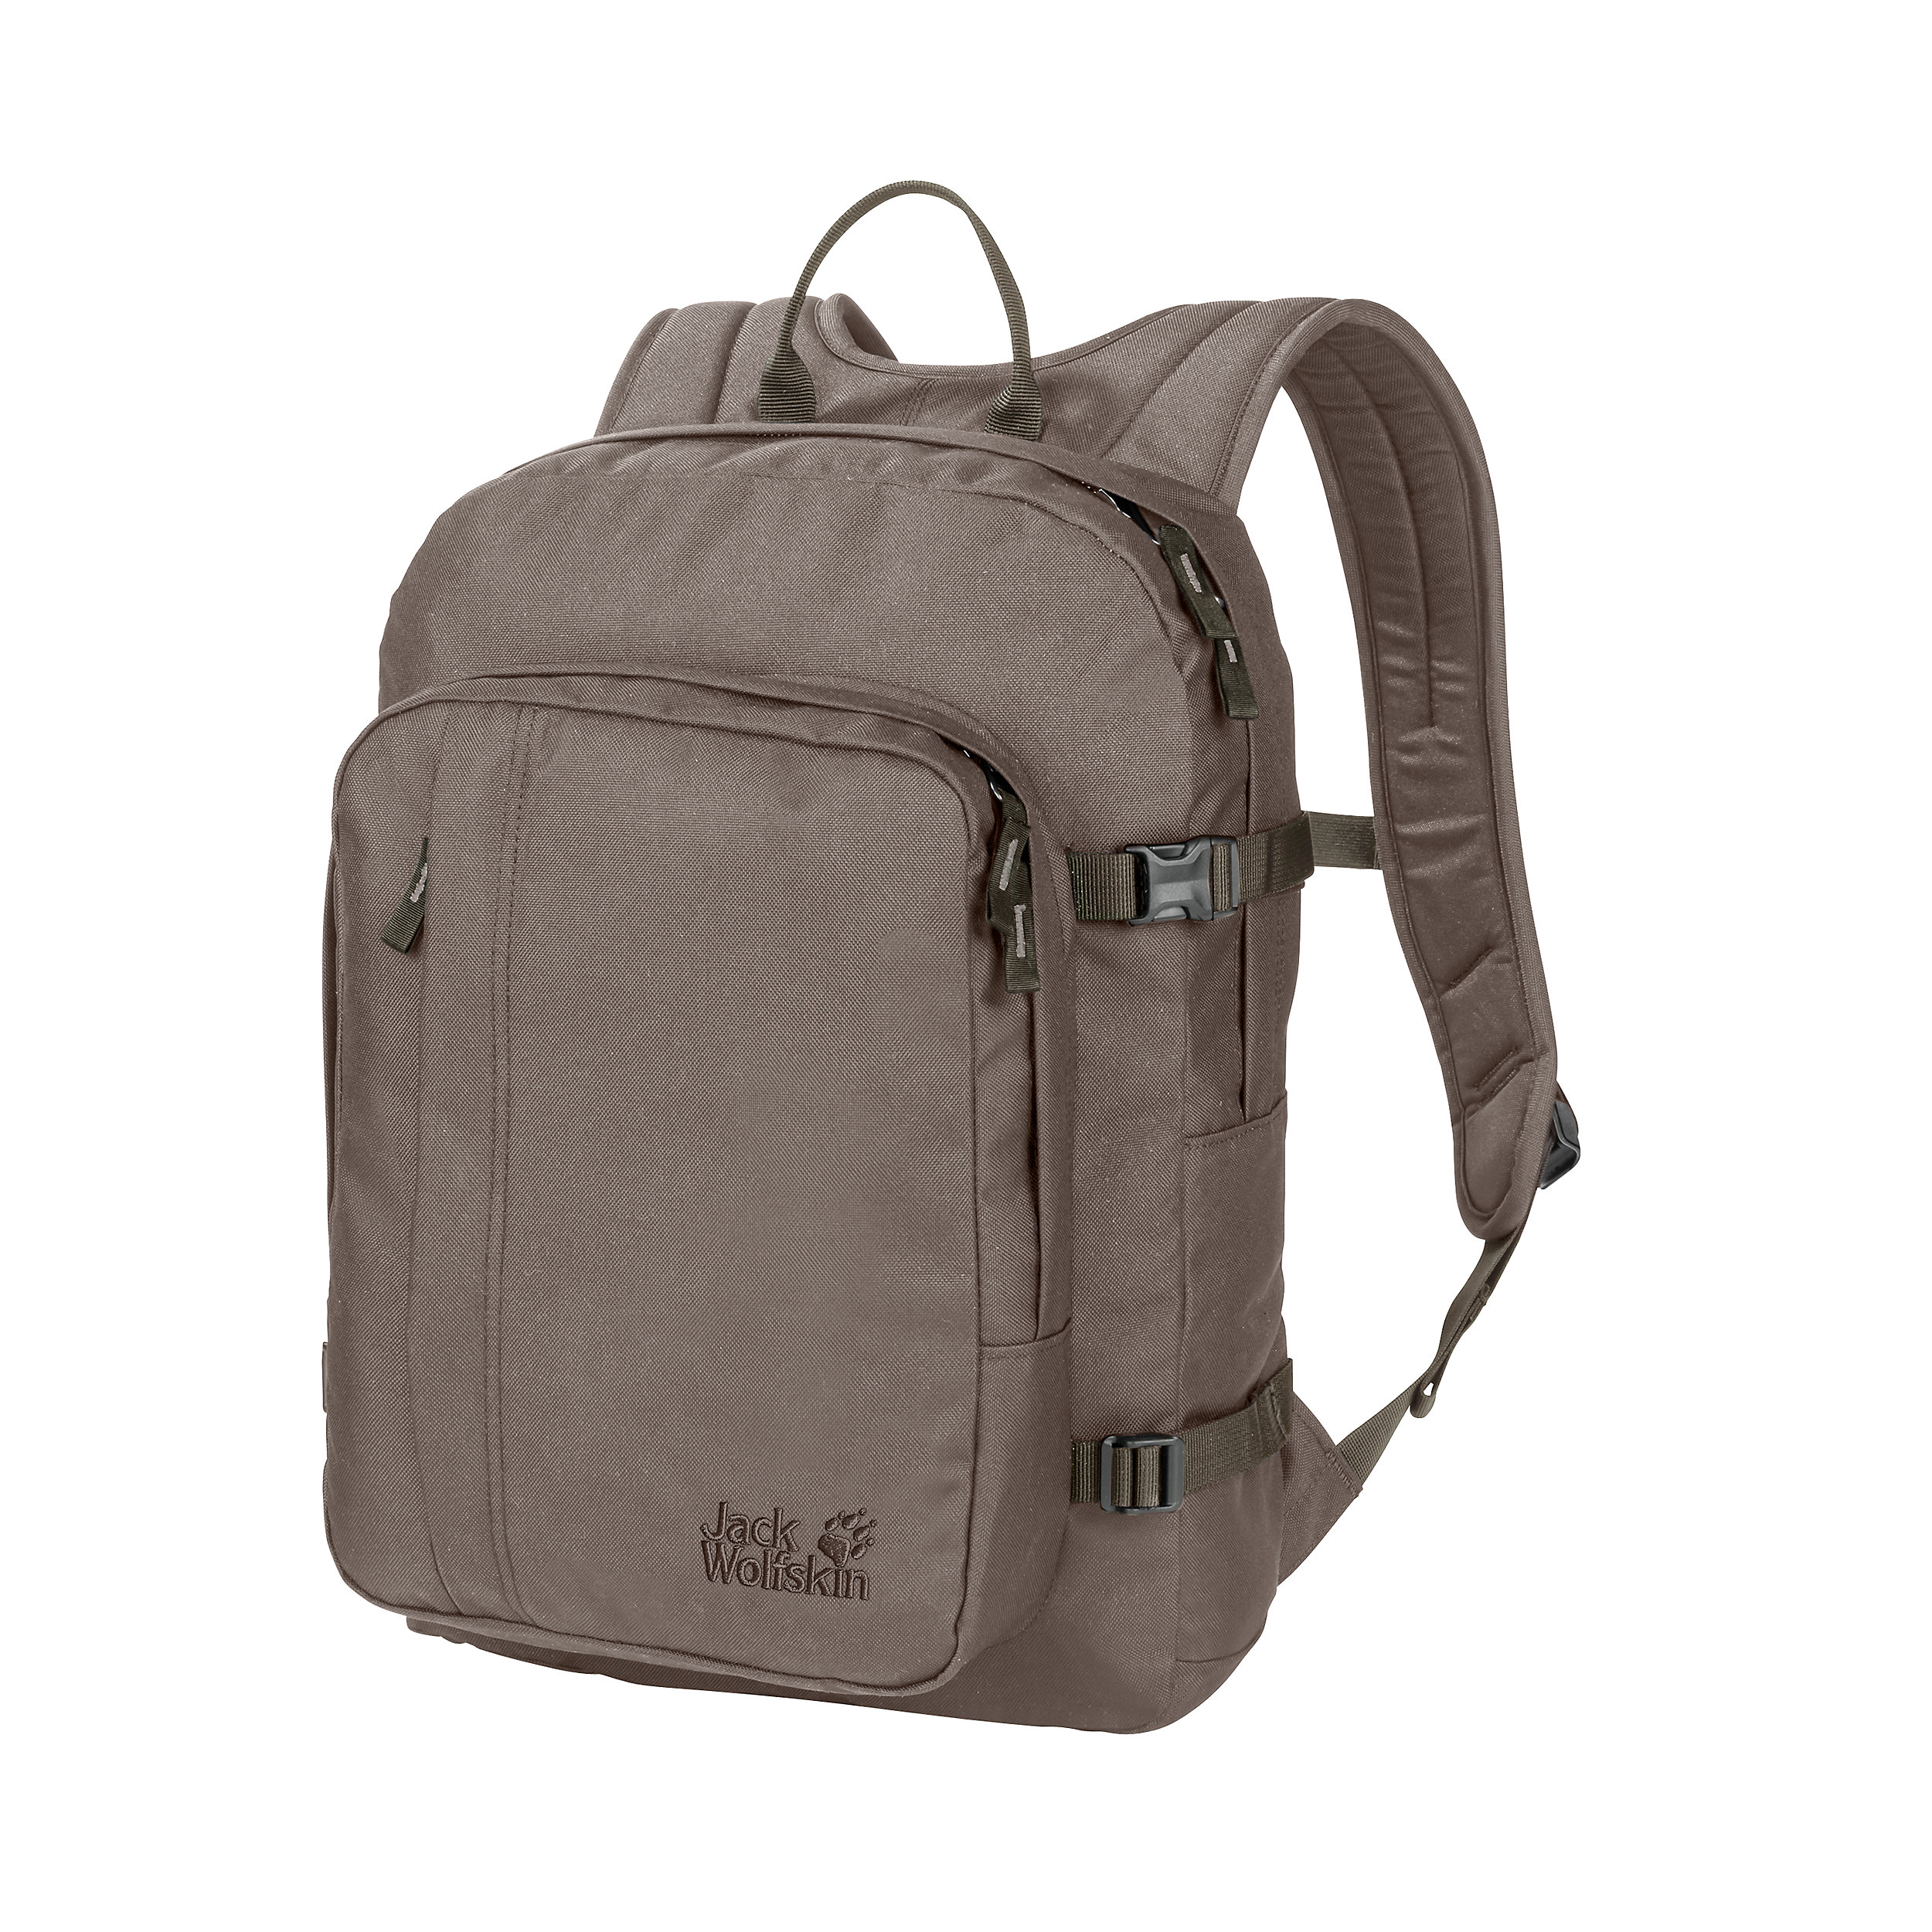 Backpack Campus Everyday Outdoor 24 Liter